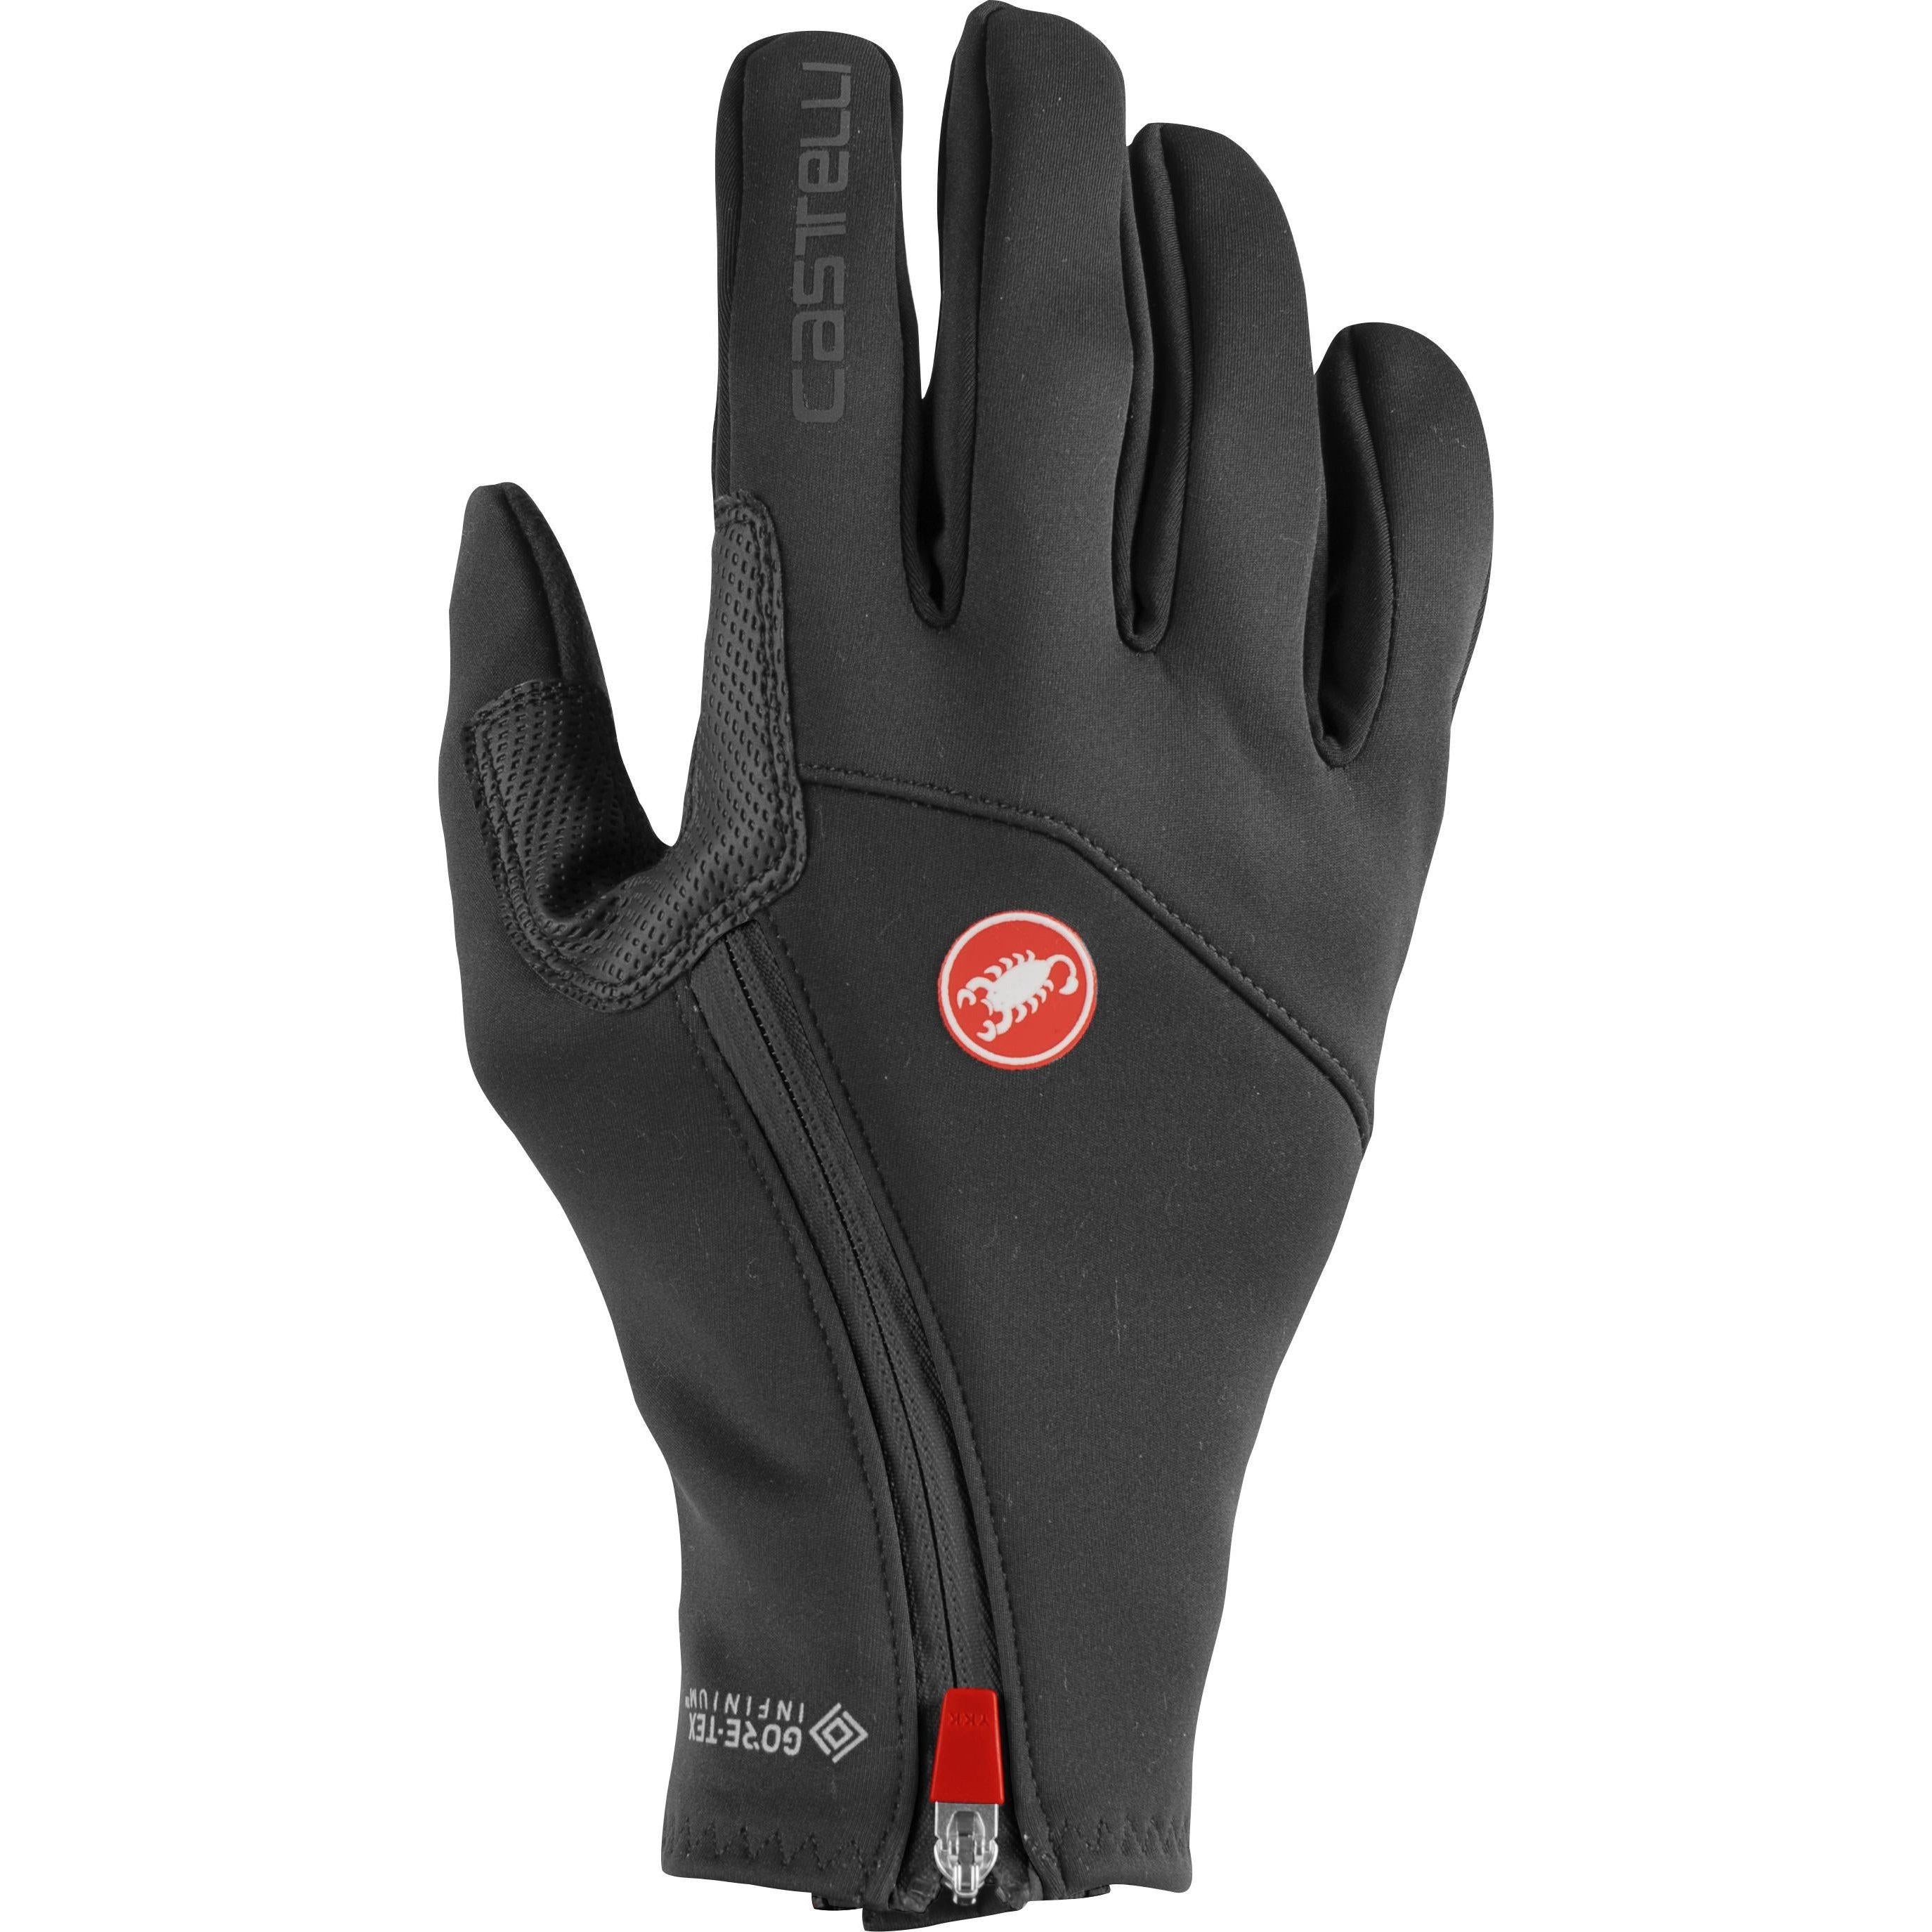 Castelli-Castelli Mortirolo Gloves-Light Black-XS-CS205330851-saddleback-elite-performance-cycling